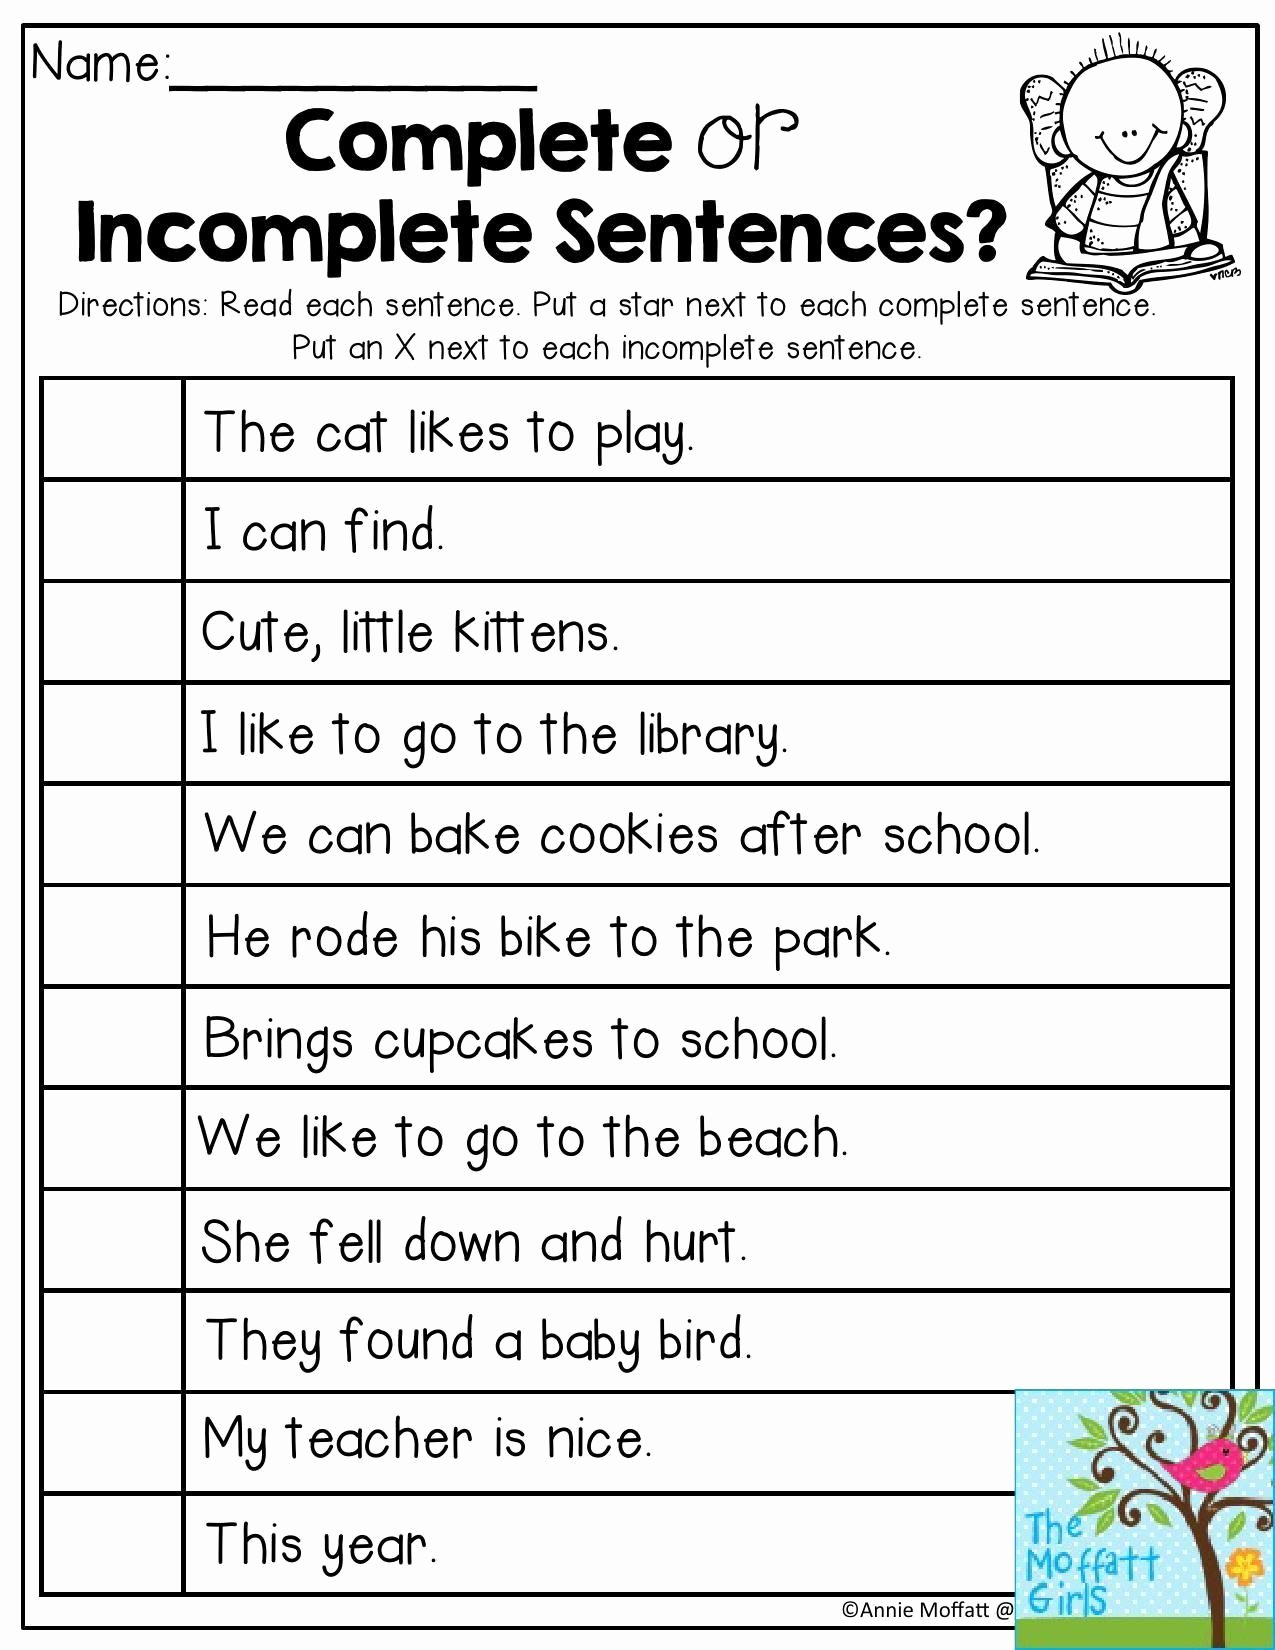 Complete Sentence Worksheets 1st Grade Free Plete or In Plete Sentences Read Each Sentence and